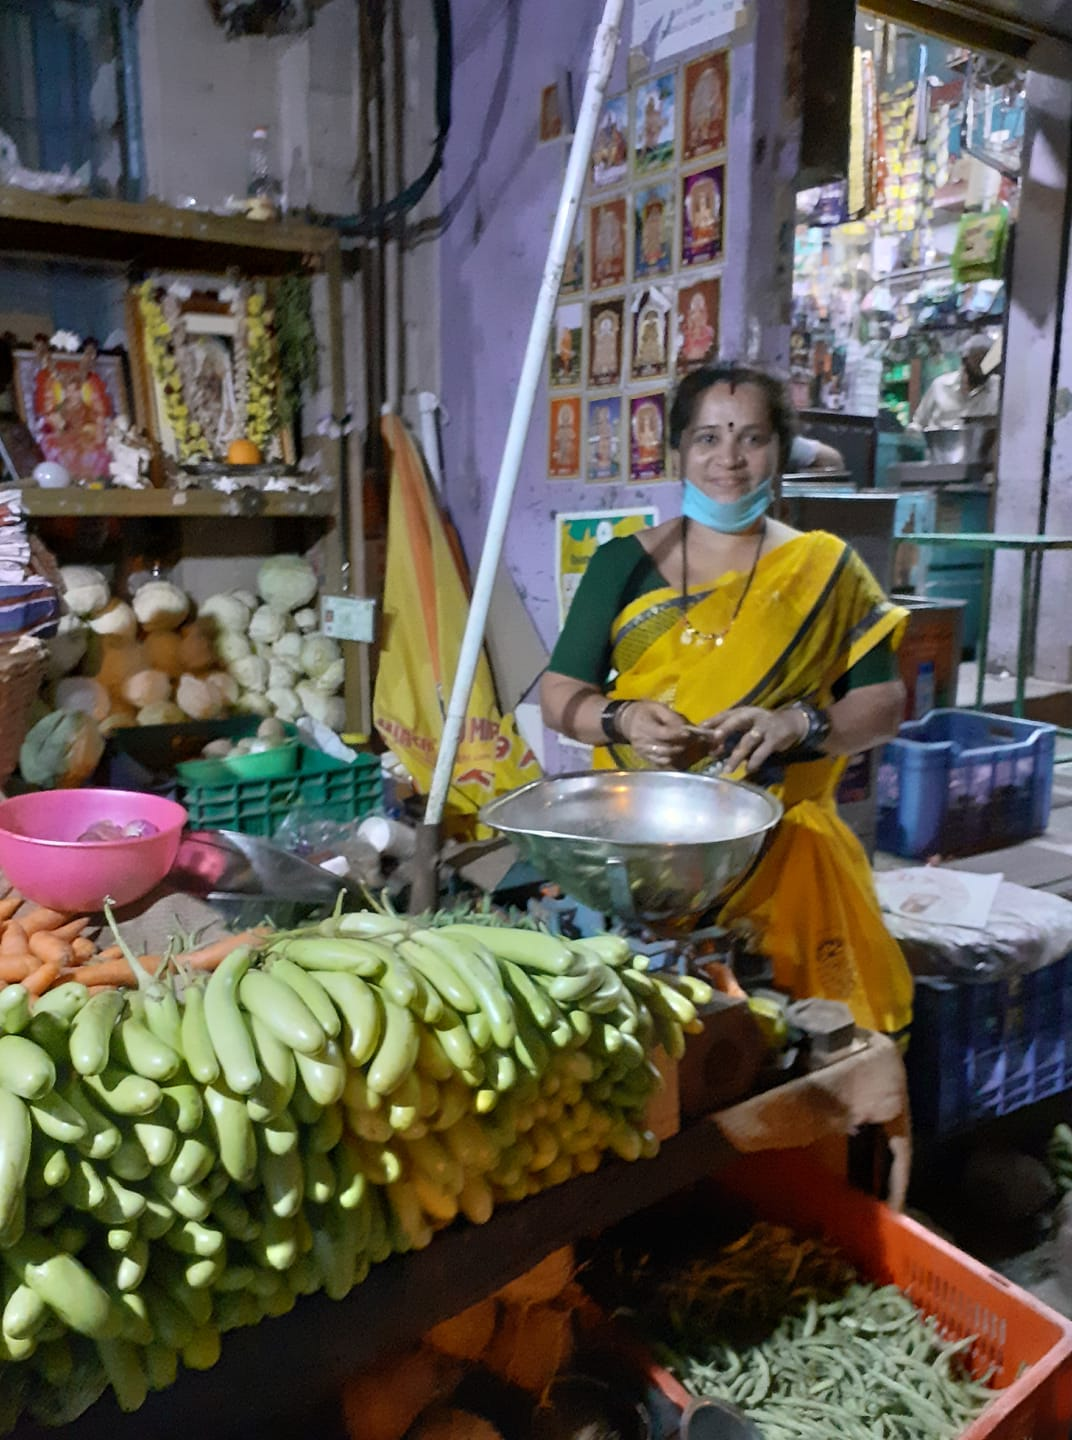 Mamata, the vegetable vendor and her Seva to the society